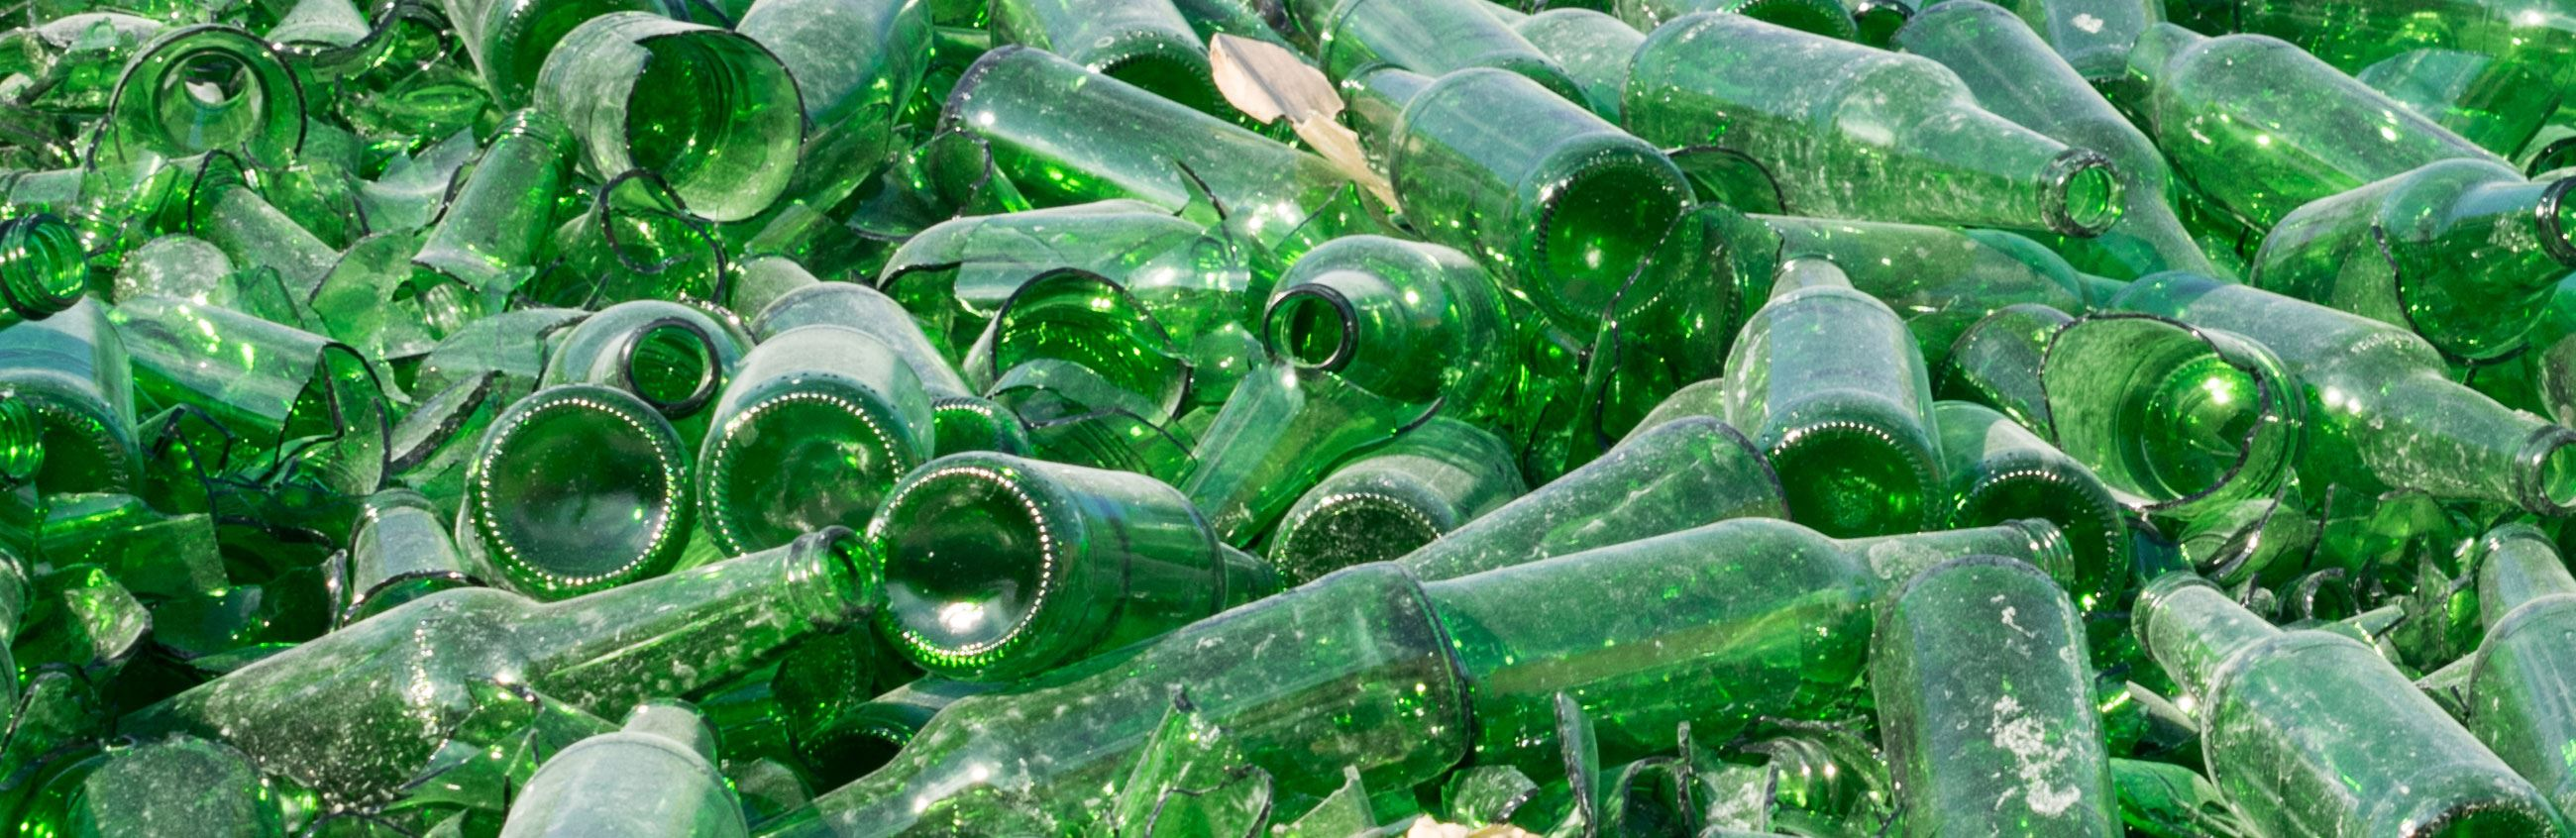 Green Glass for Recycling